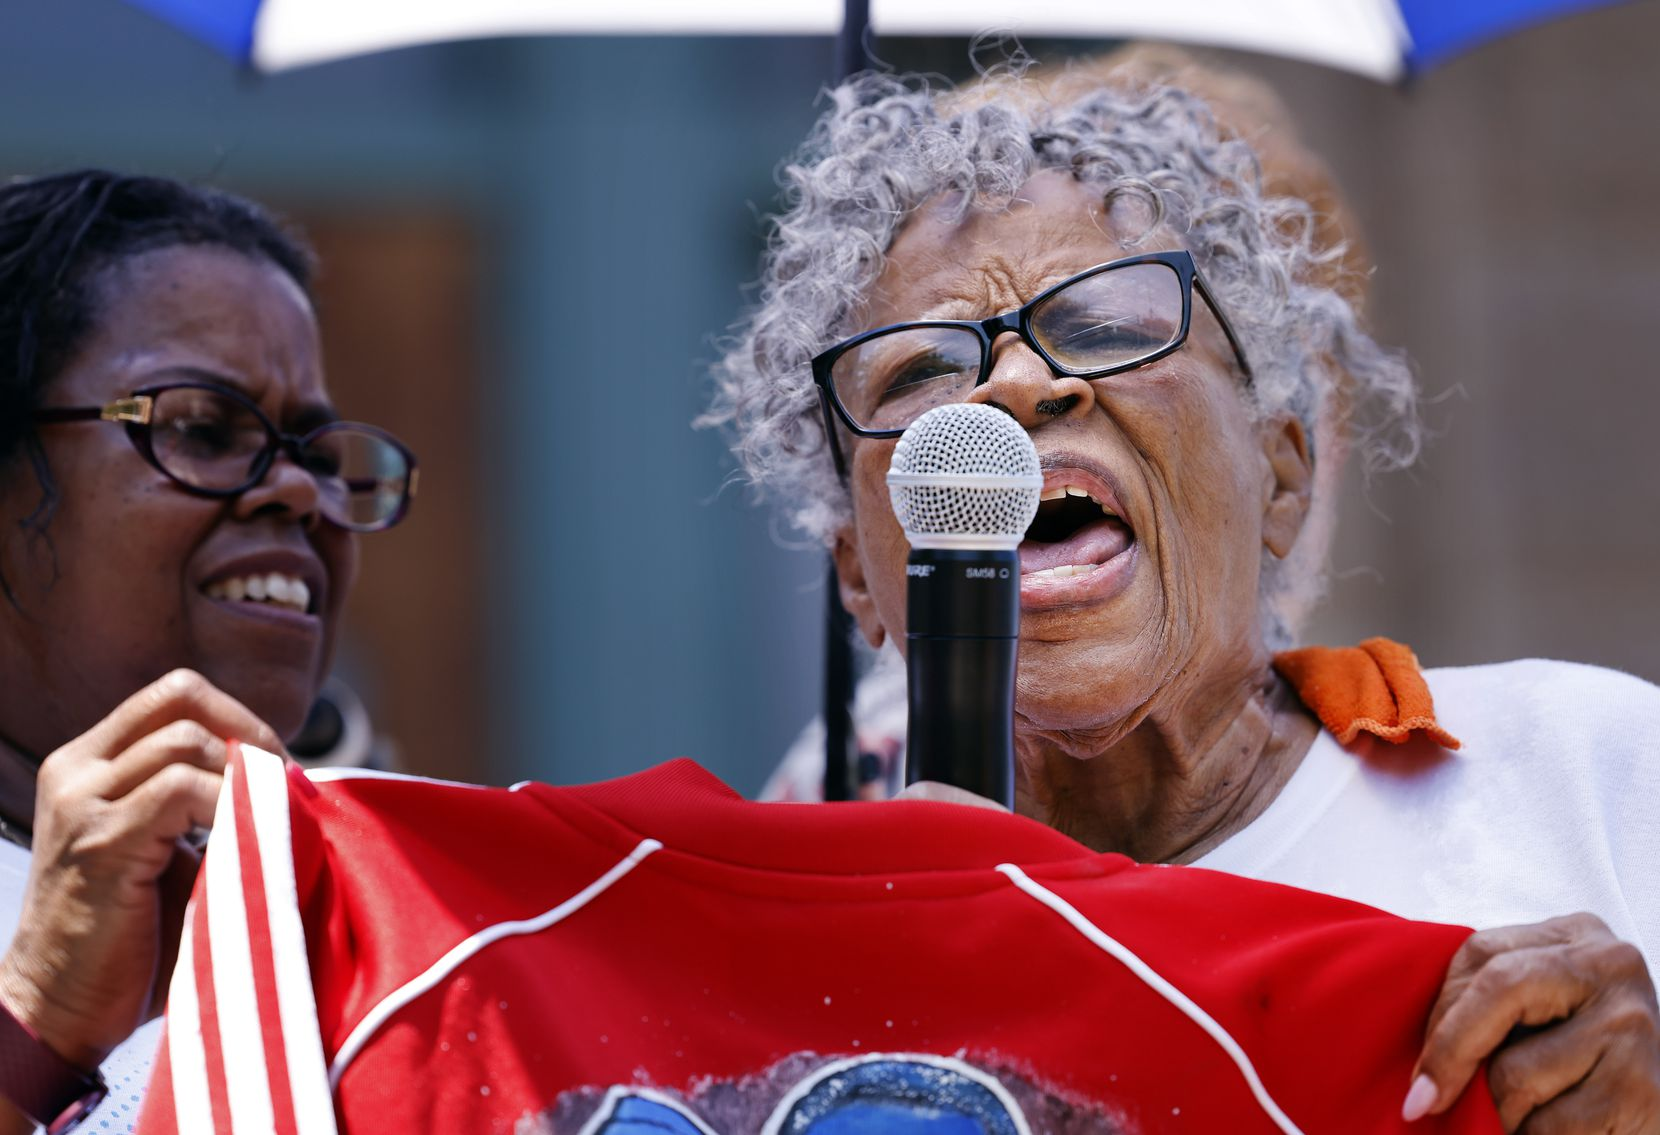 Opal Lee addressed supporters outside the Tarrant County Courthouse in downtown Fort Worth on June 19, two days after she visited the White House for a ceremony in which President Joe Biden signed legislation making Juneteenth a federal holiday.